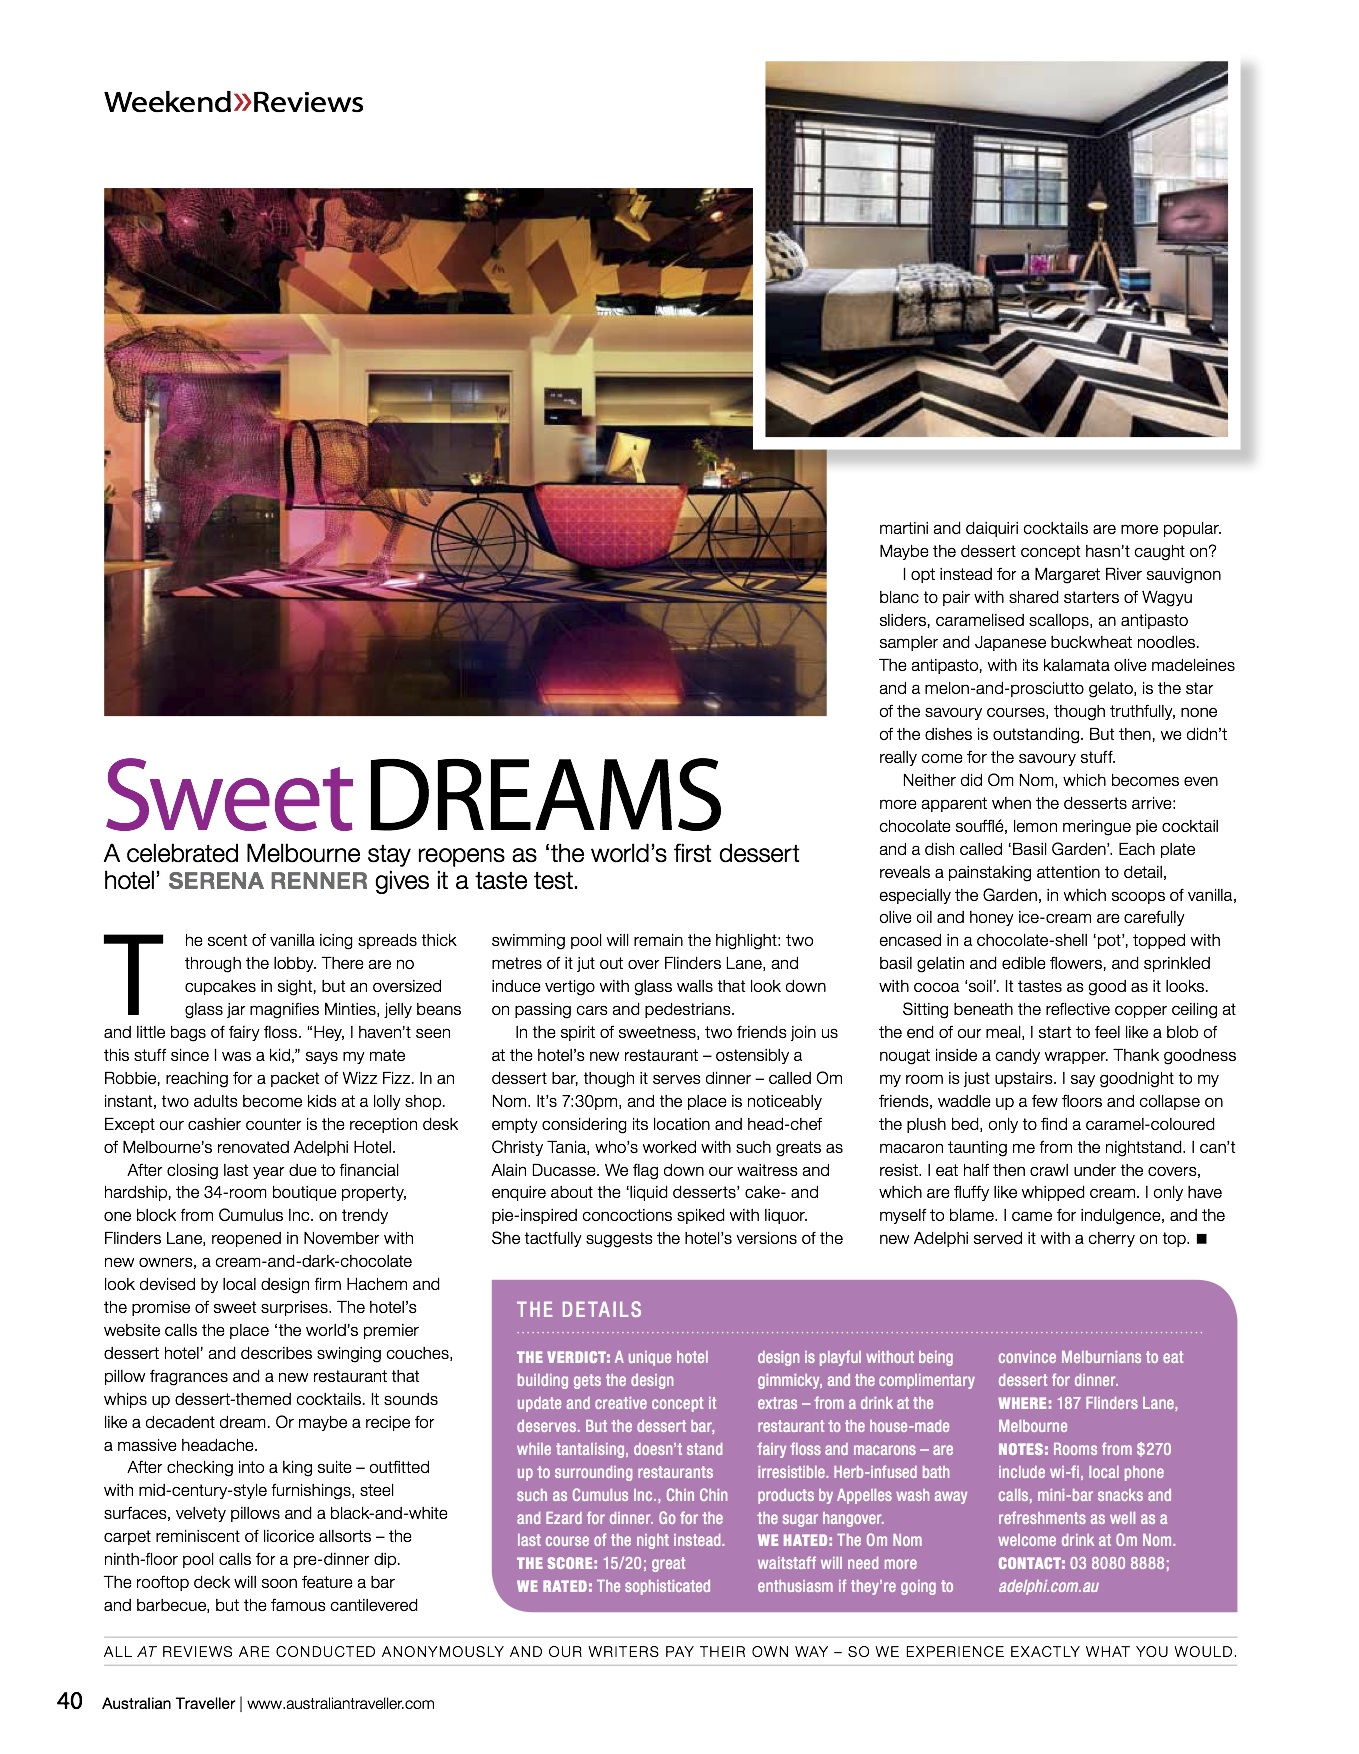 A celebrated Melbourne stay reopens as 'the world's premier dessert hotel'. Serena Renner gives it a taste test